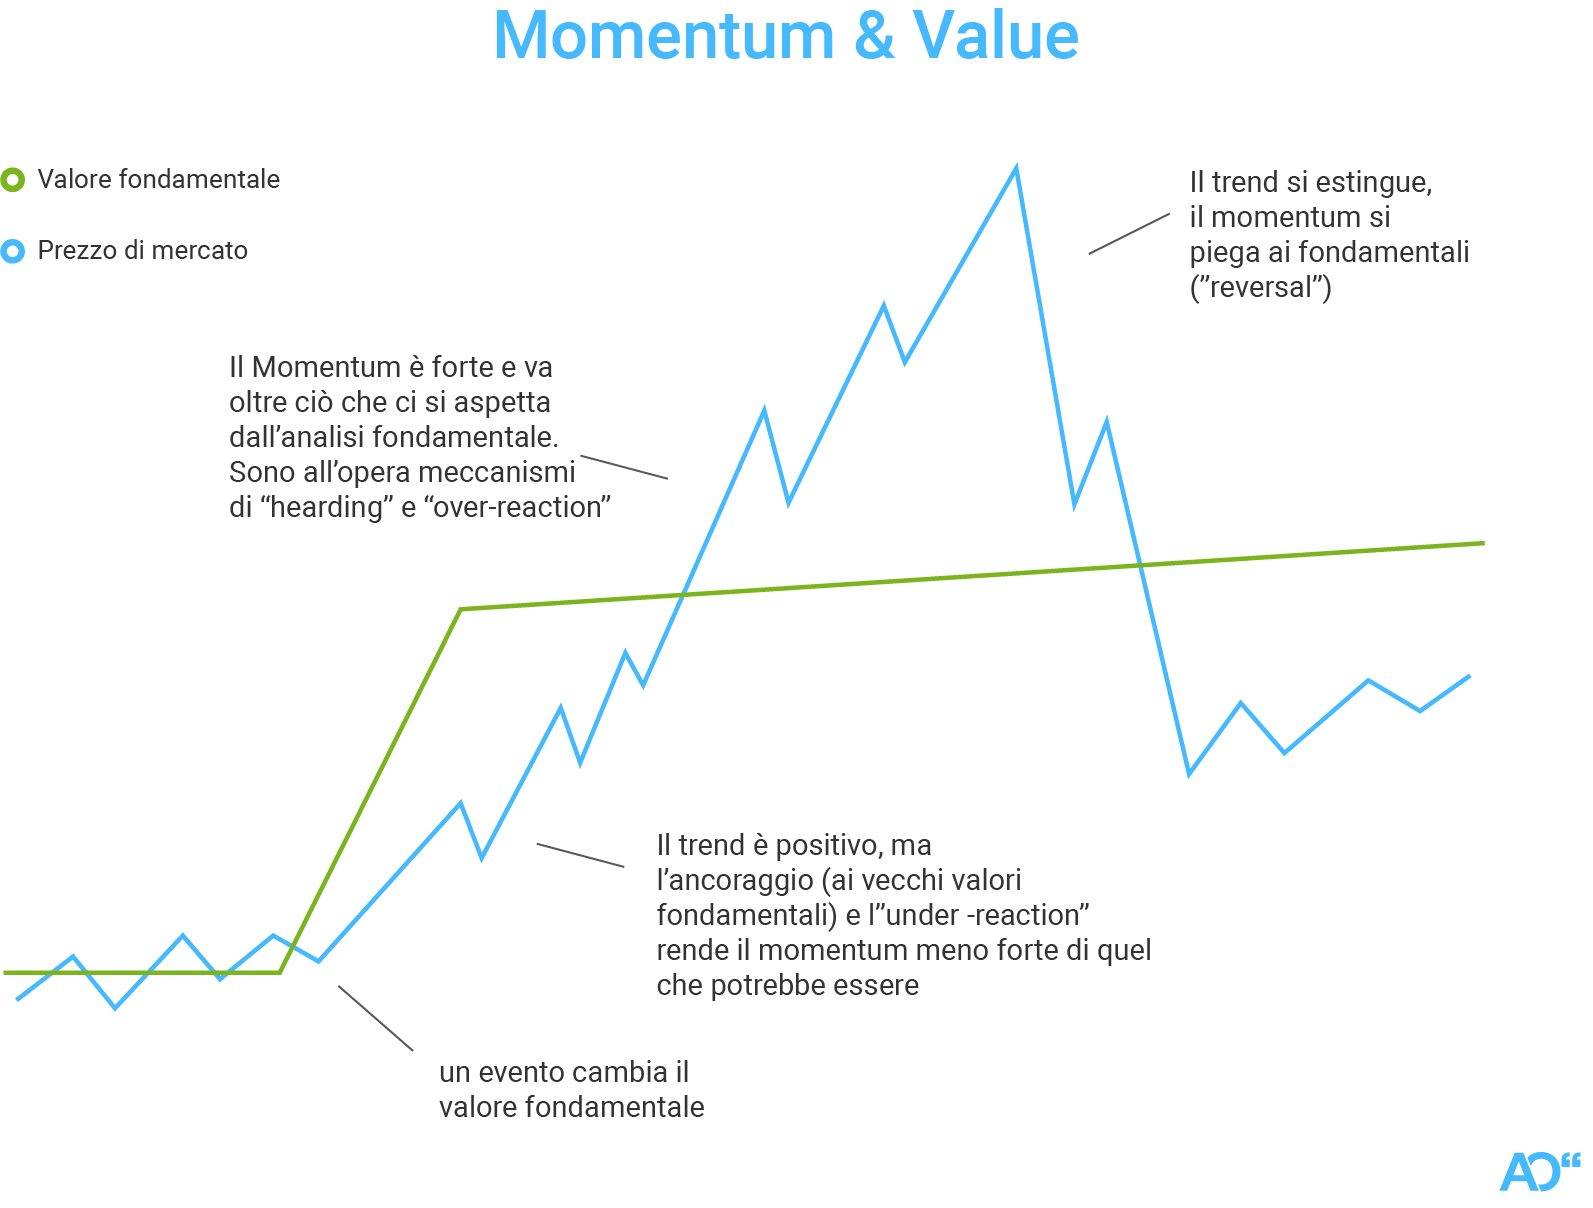 Strategie Value e Momentum a confronto